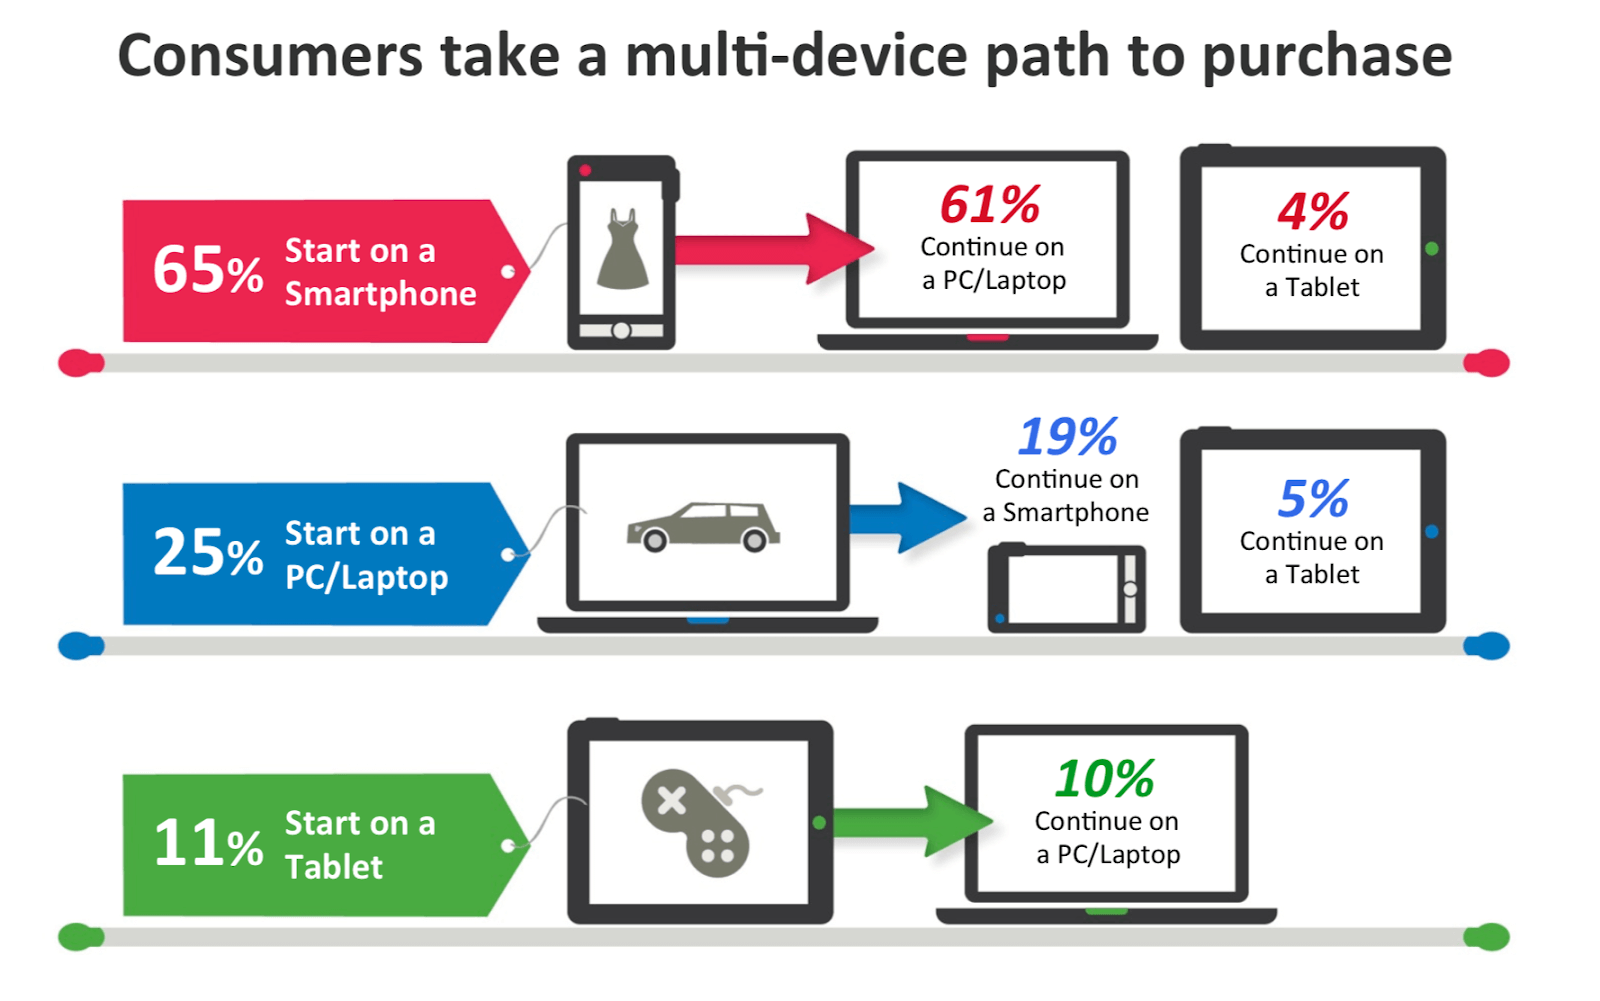 Graphic demonstrating customers' multi-device path to purchase.